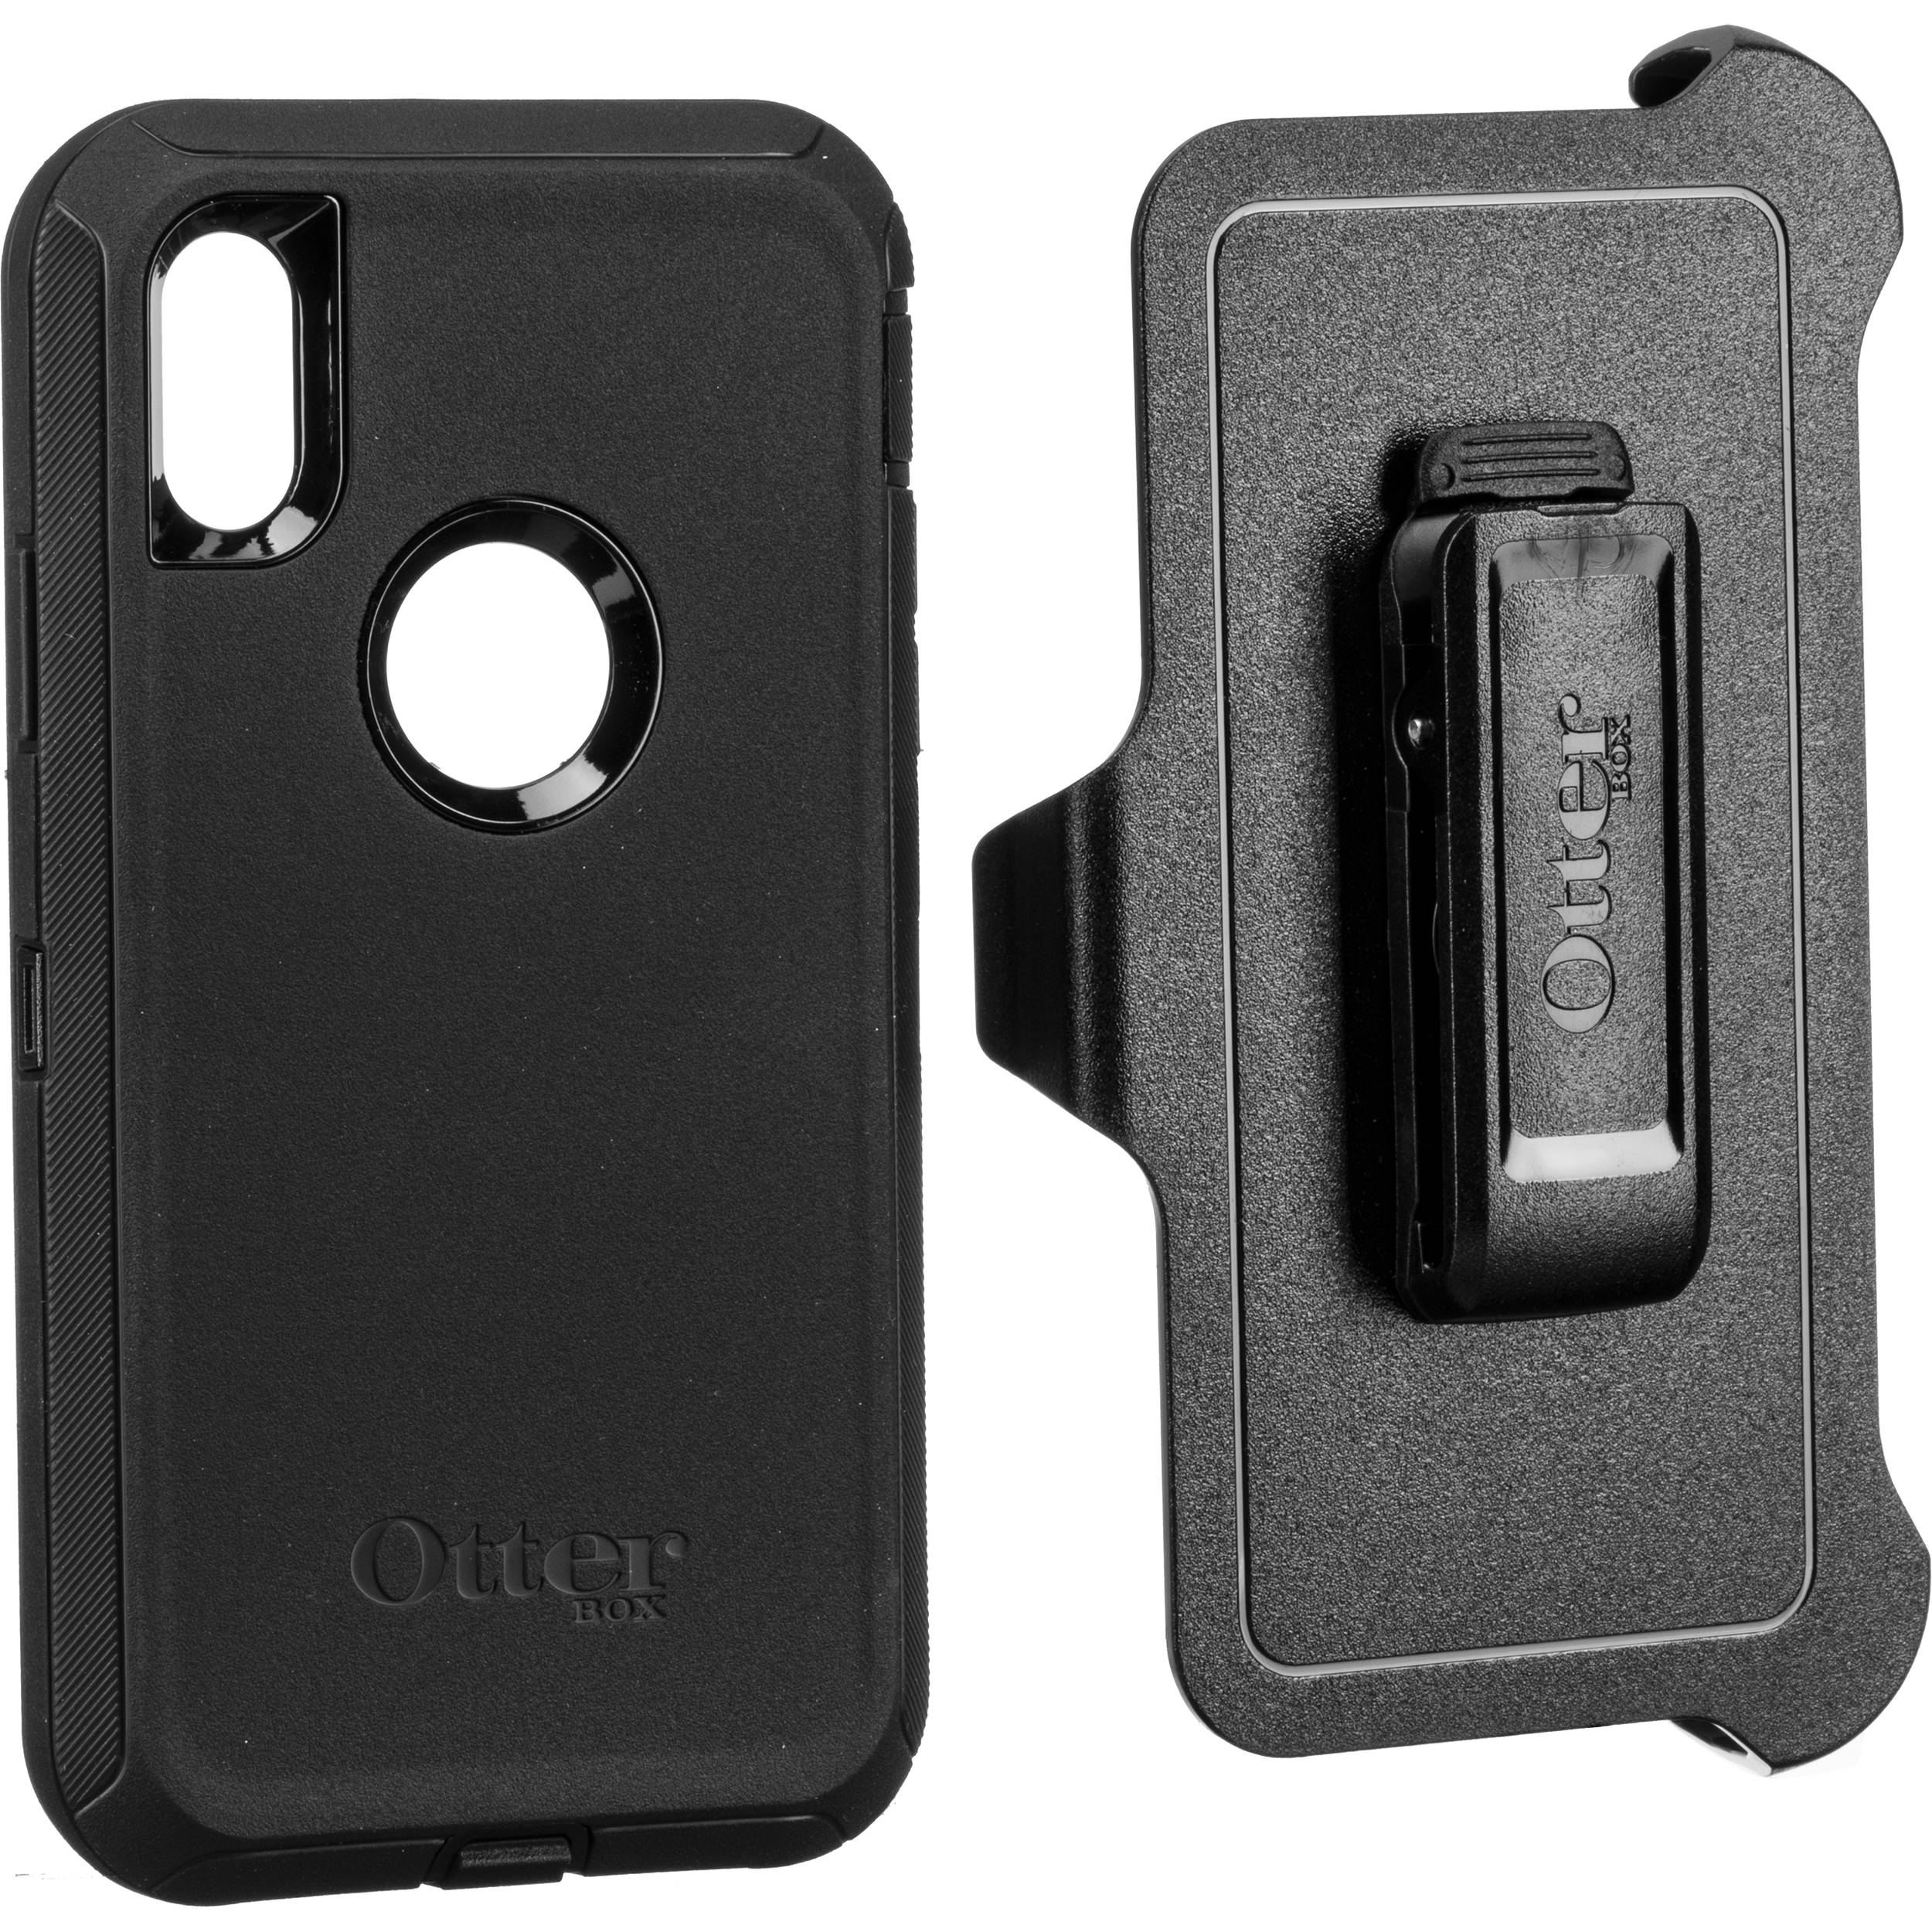 Otterbox Defender Series Case For Iphone Xr Black 77 59761 B H